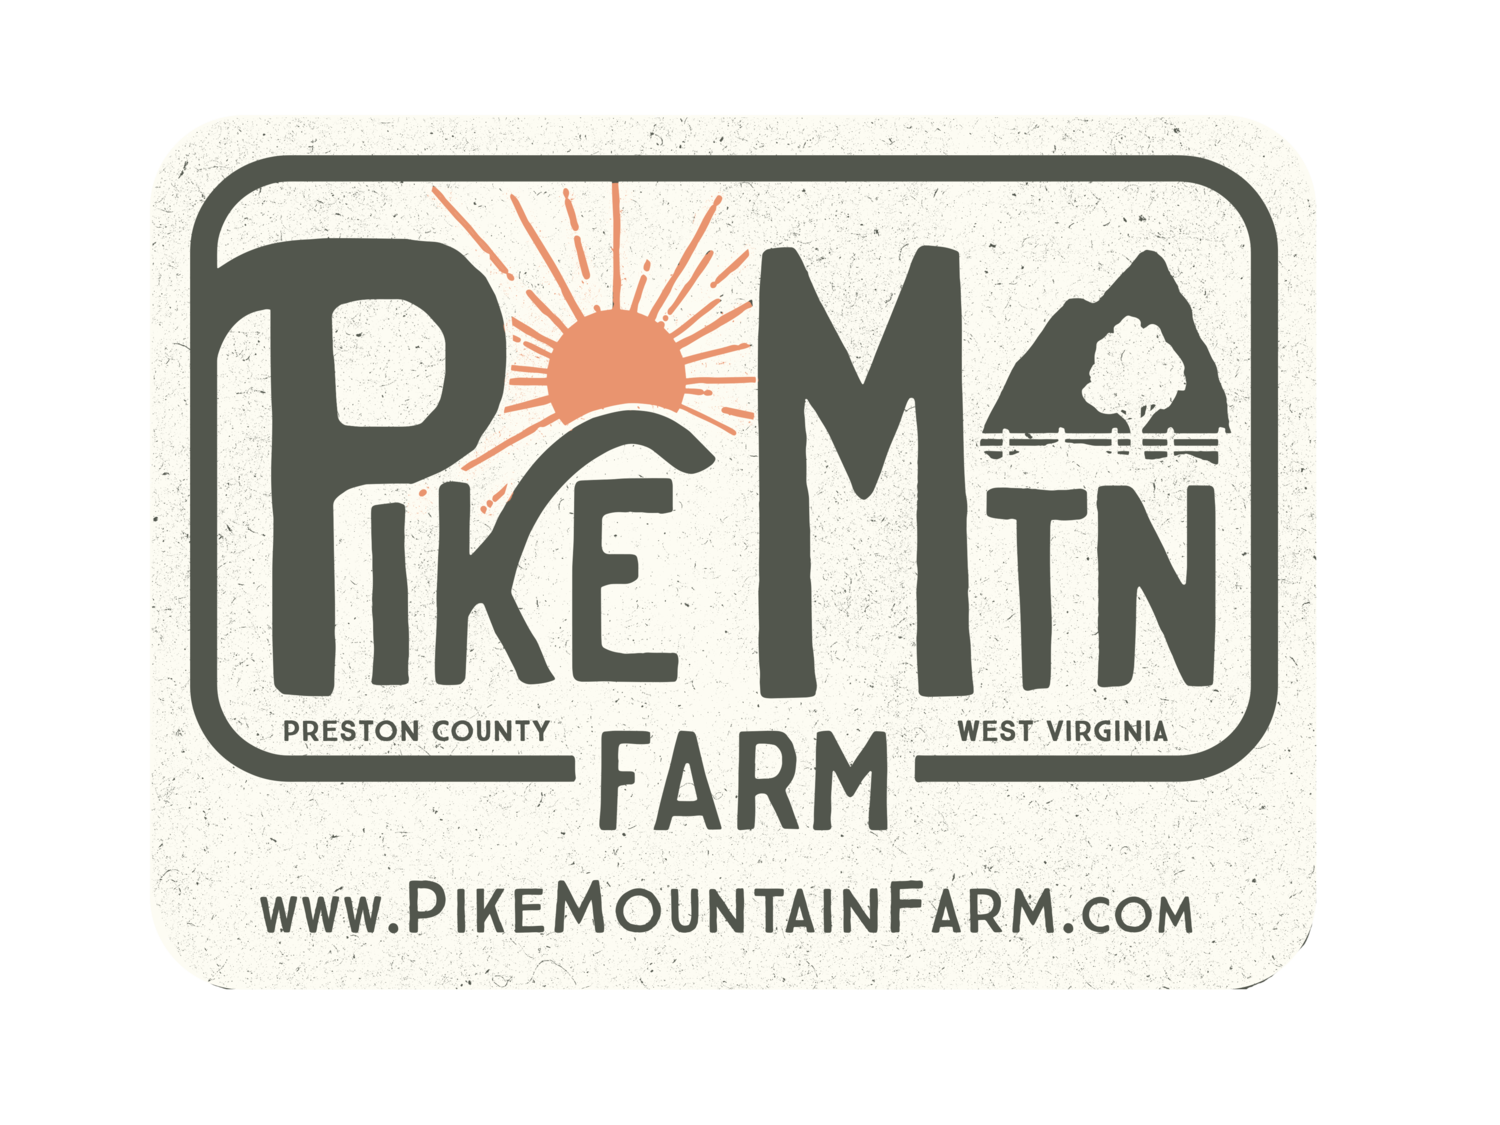 Pike Mountain Farm